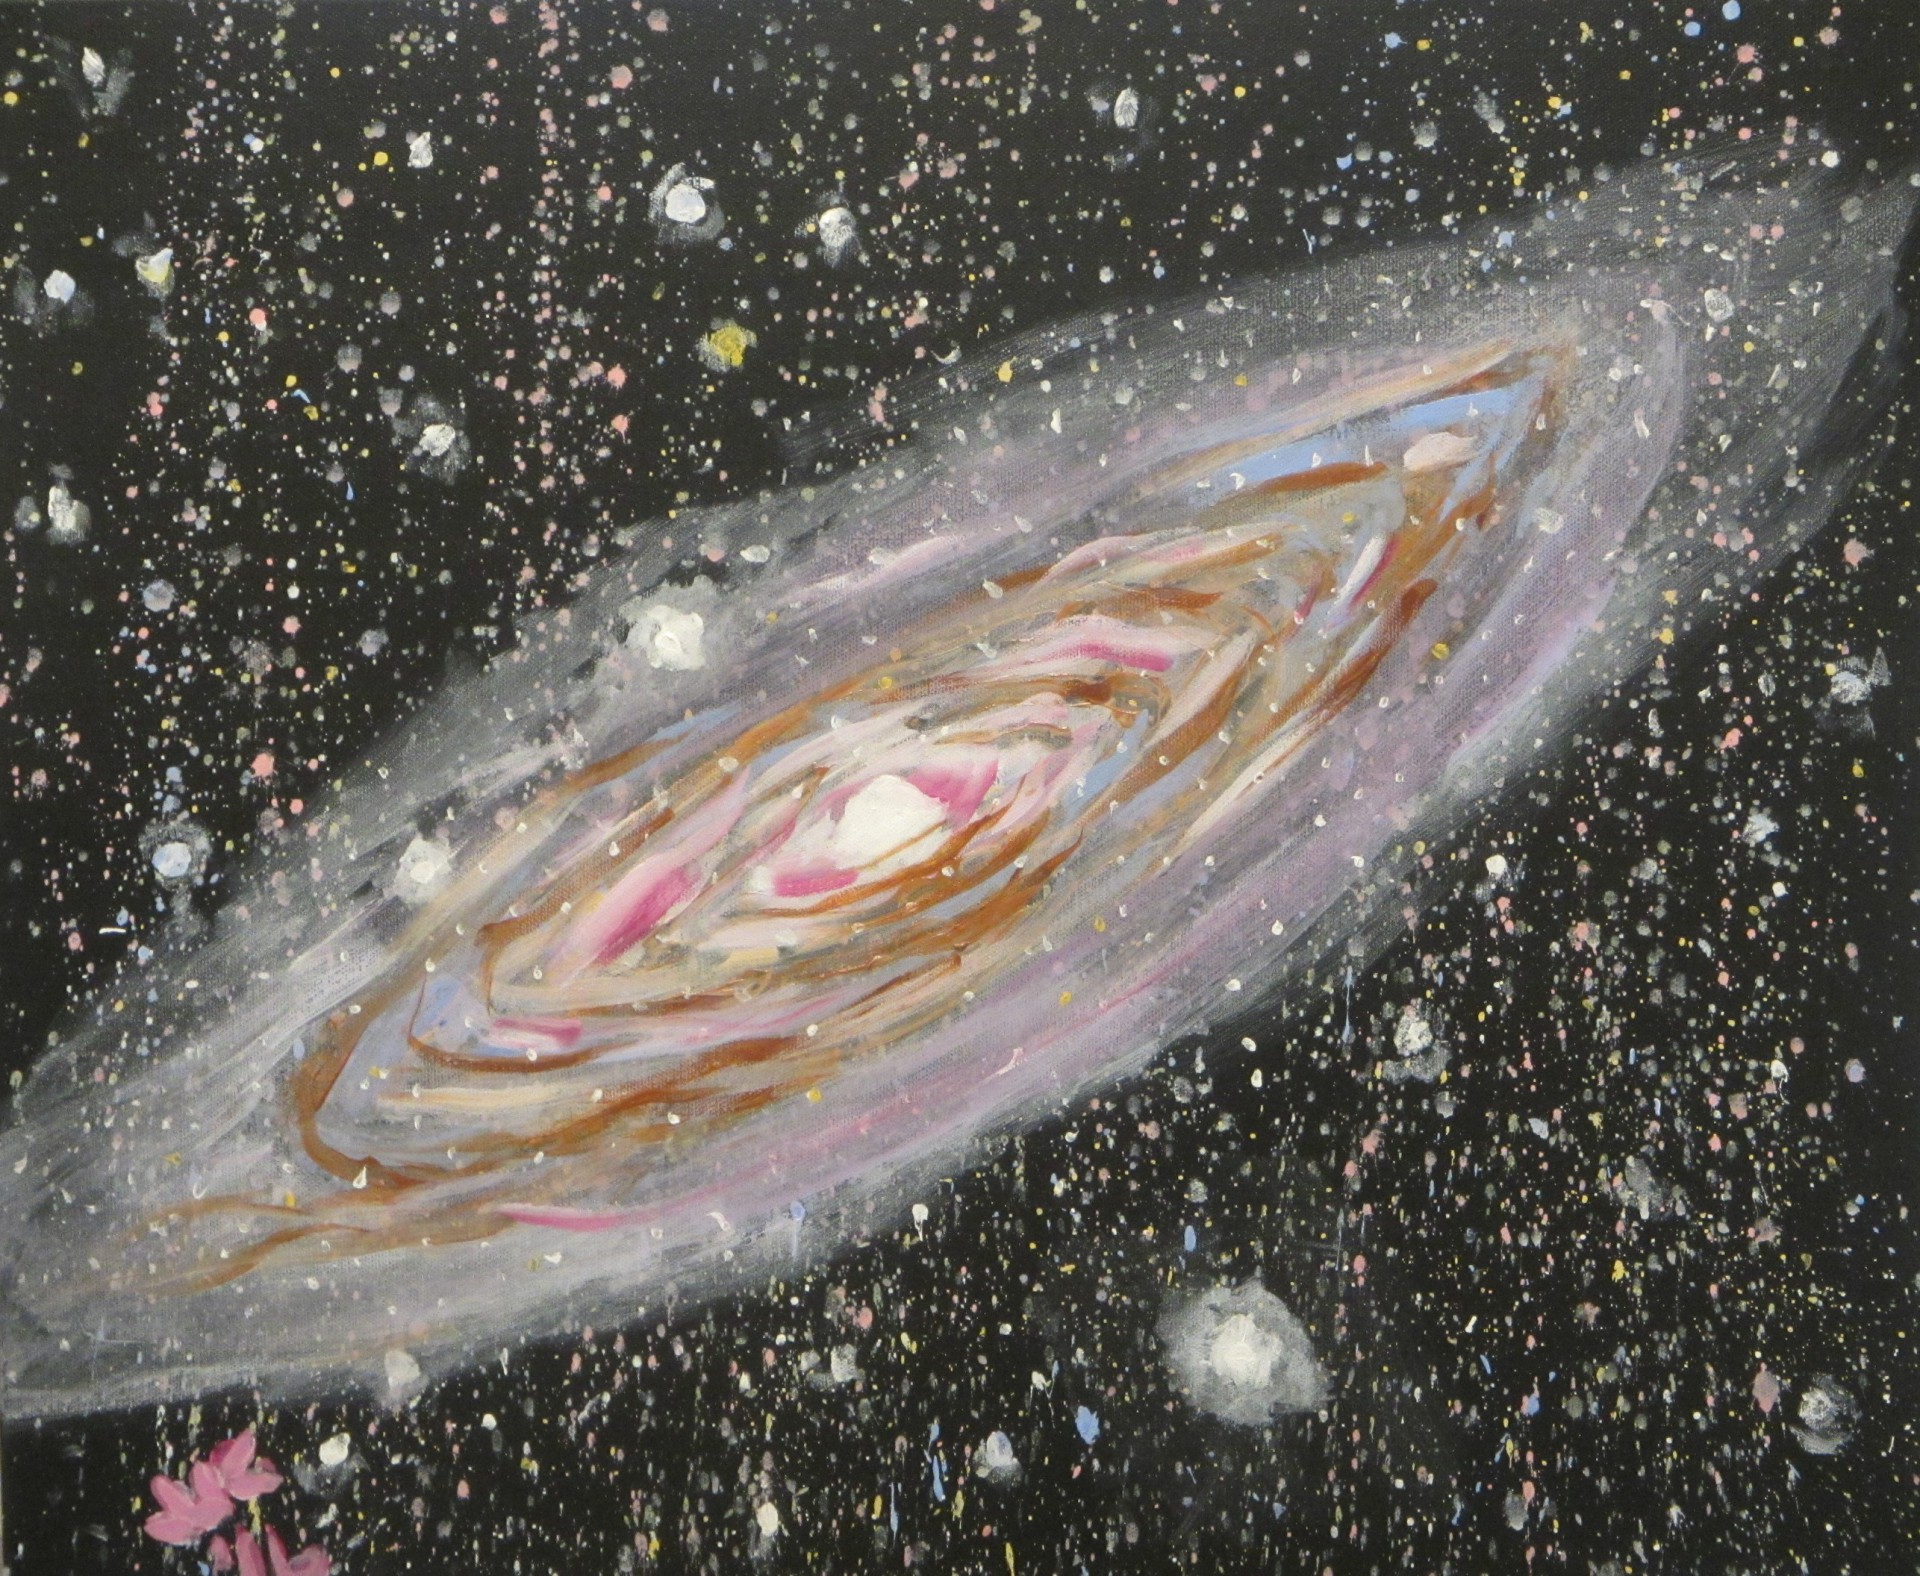 Abstract starscape showing the galaxy Andromeda.